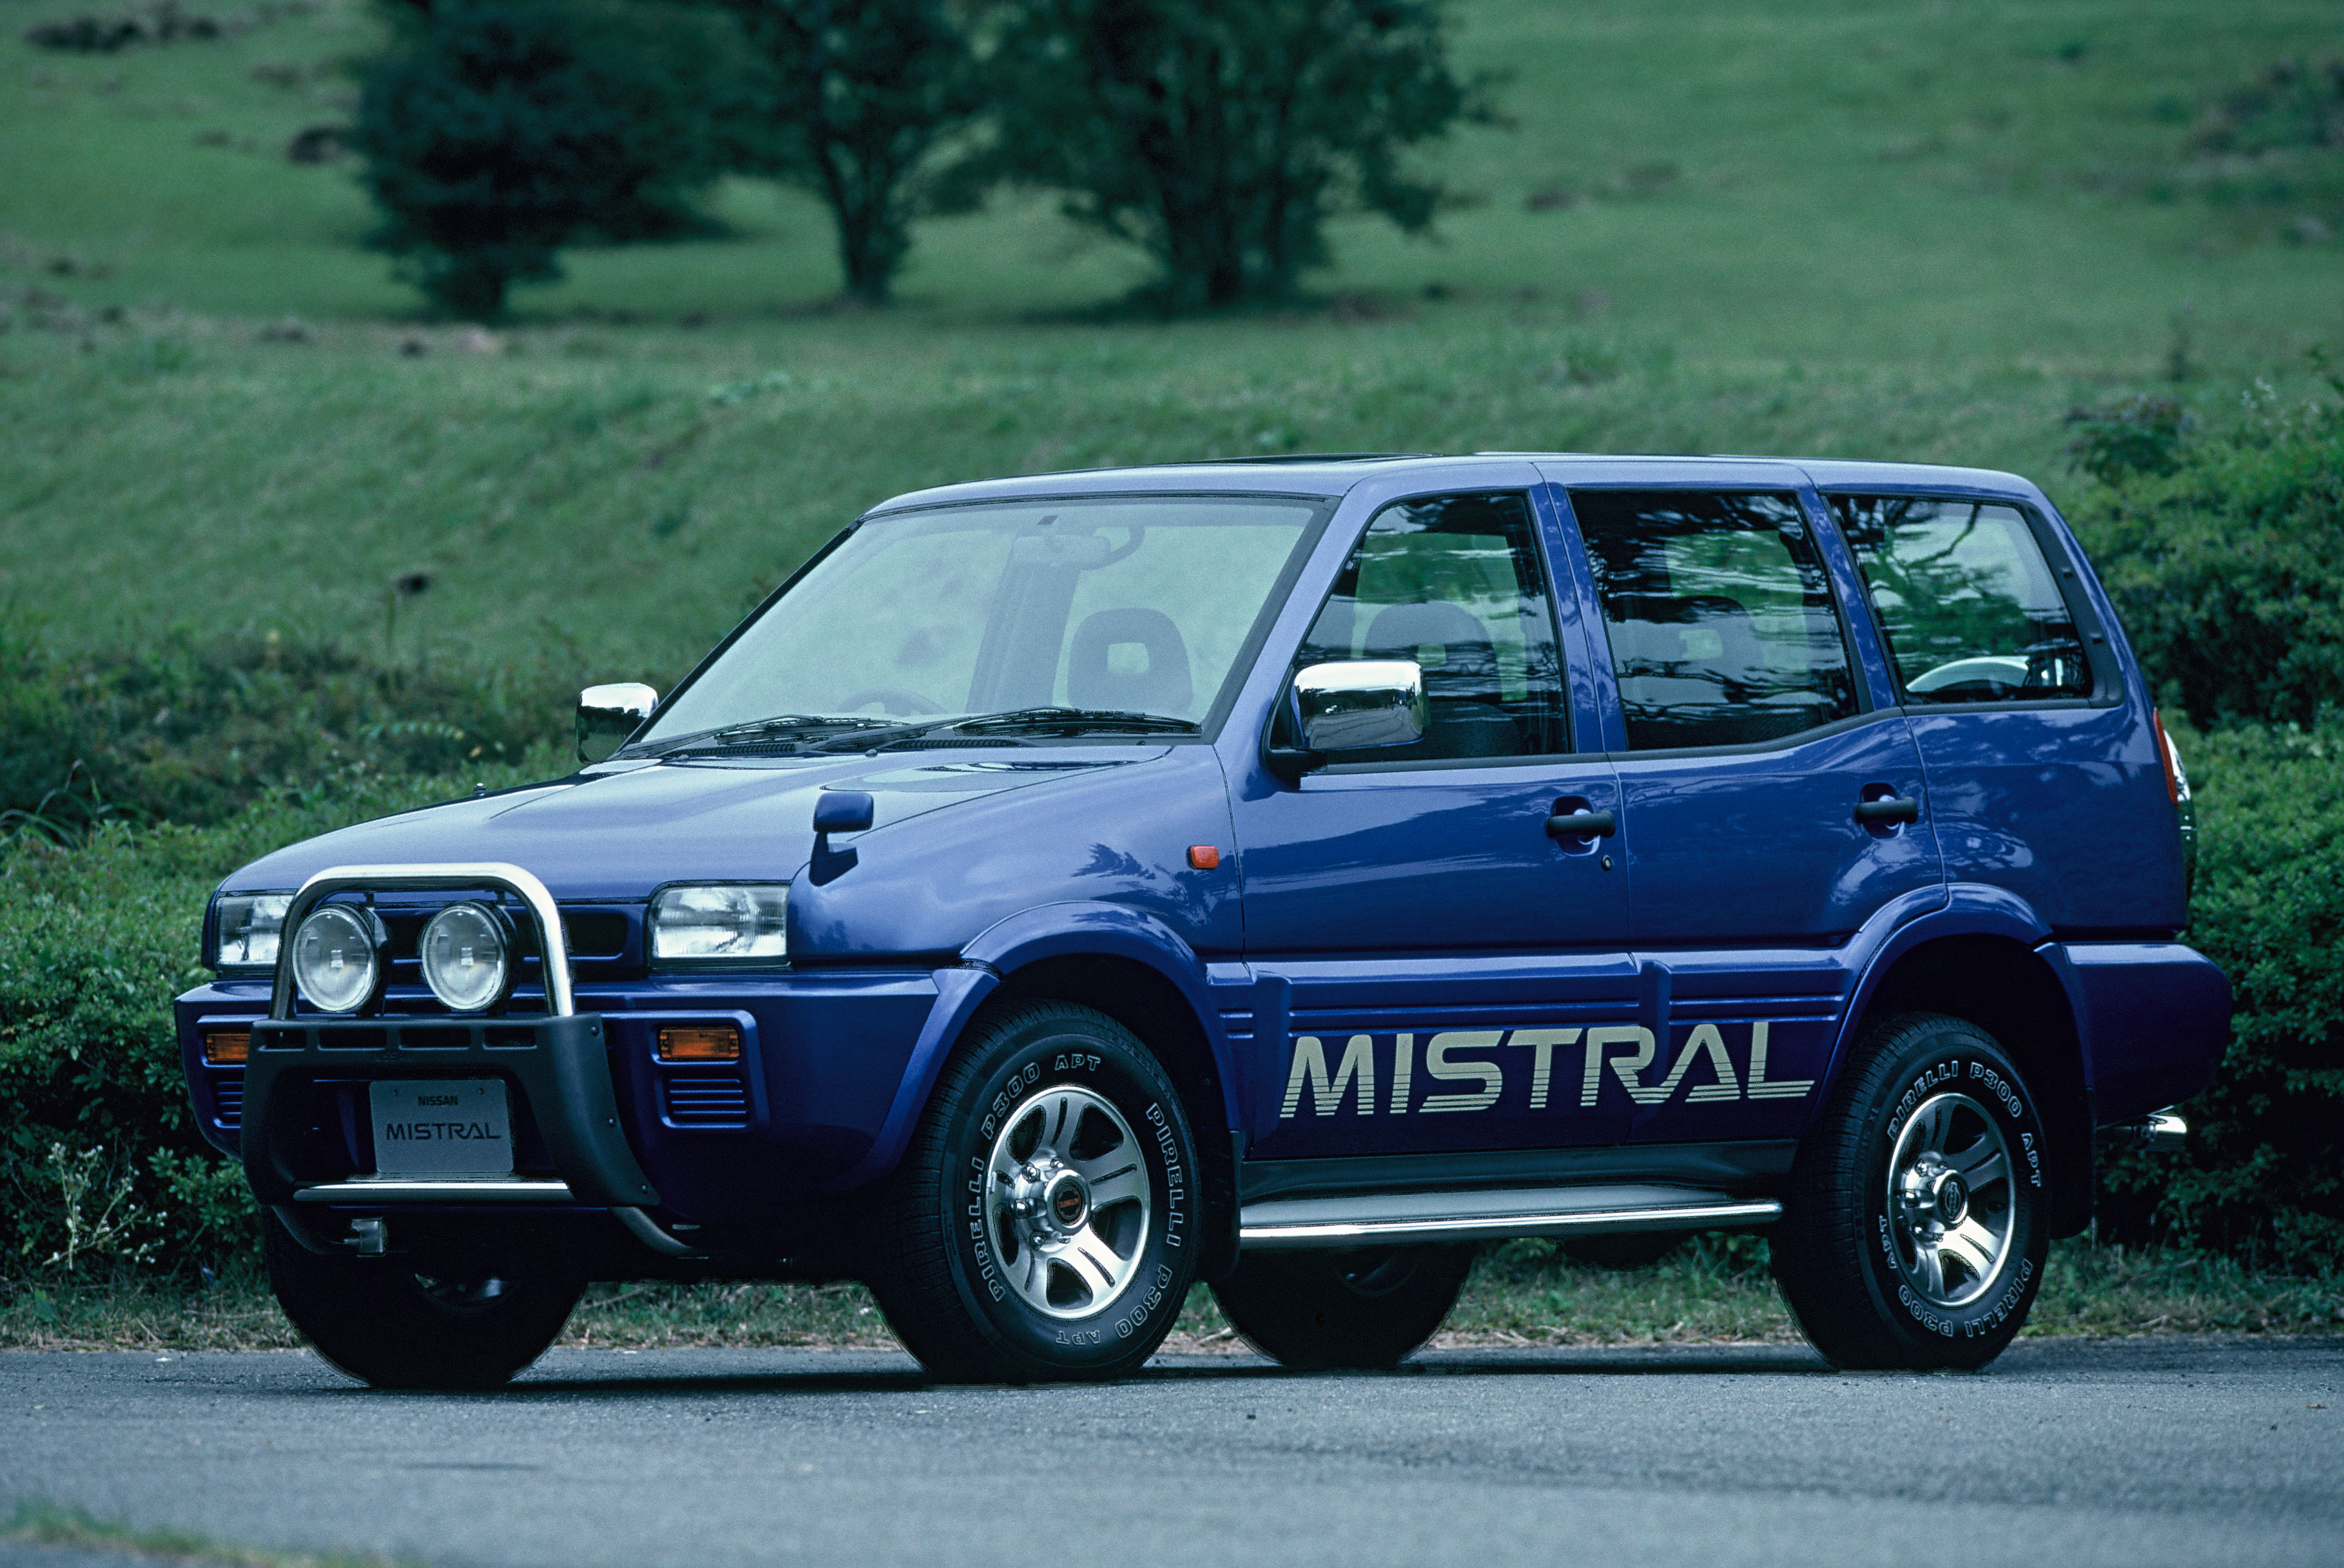 Nissan mistral photo - 7